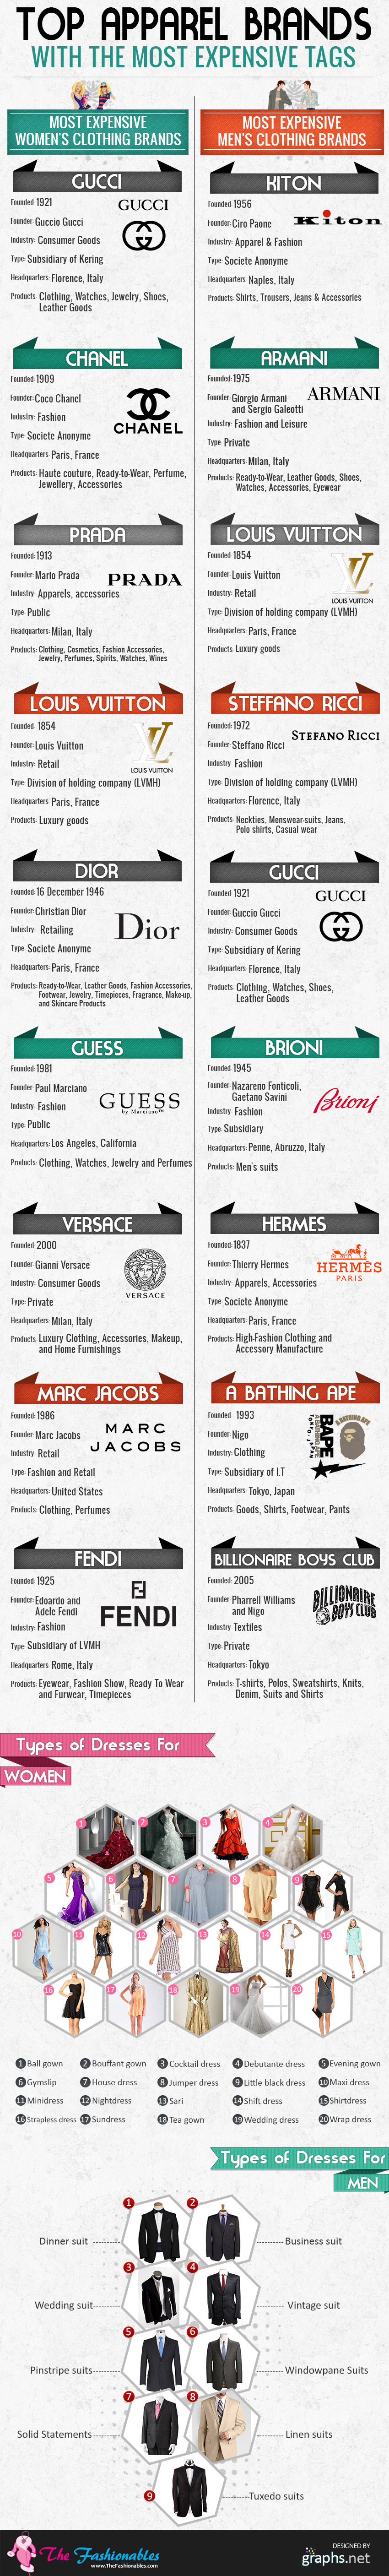 Most expensive and widely recognized apparel brands in the for Top dress shirt brands